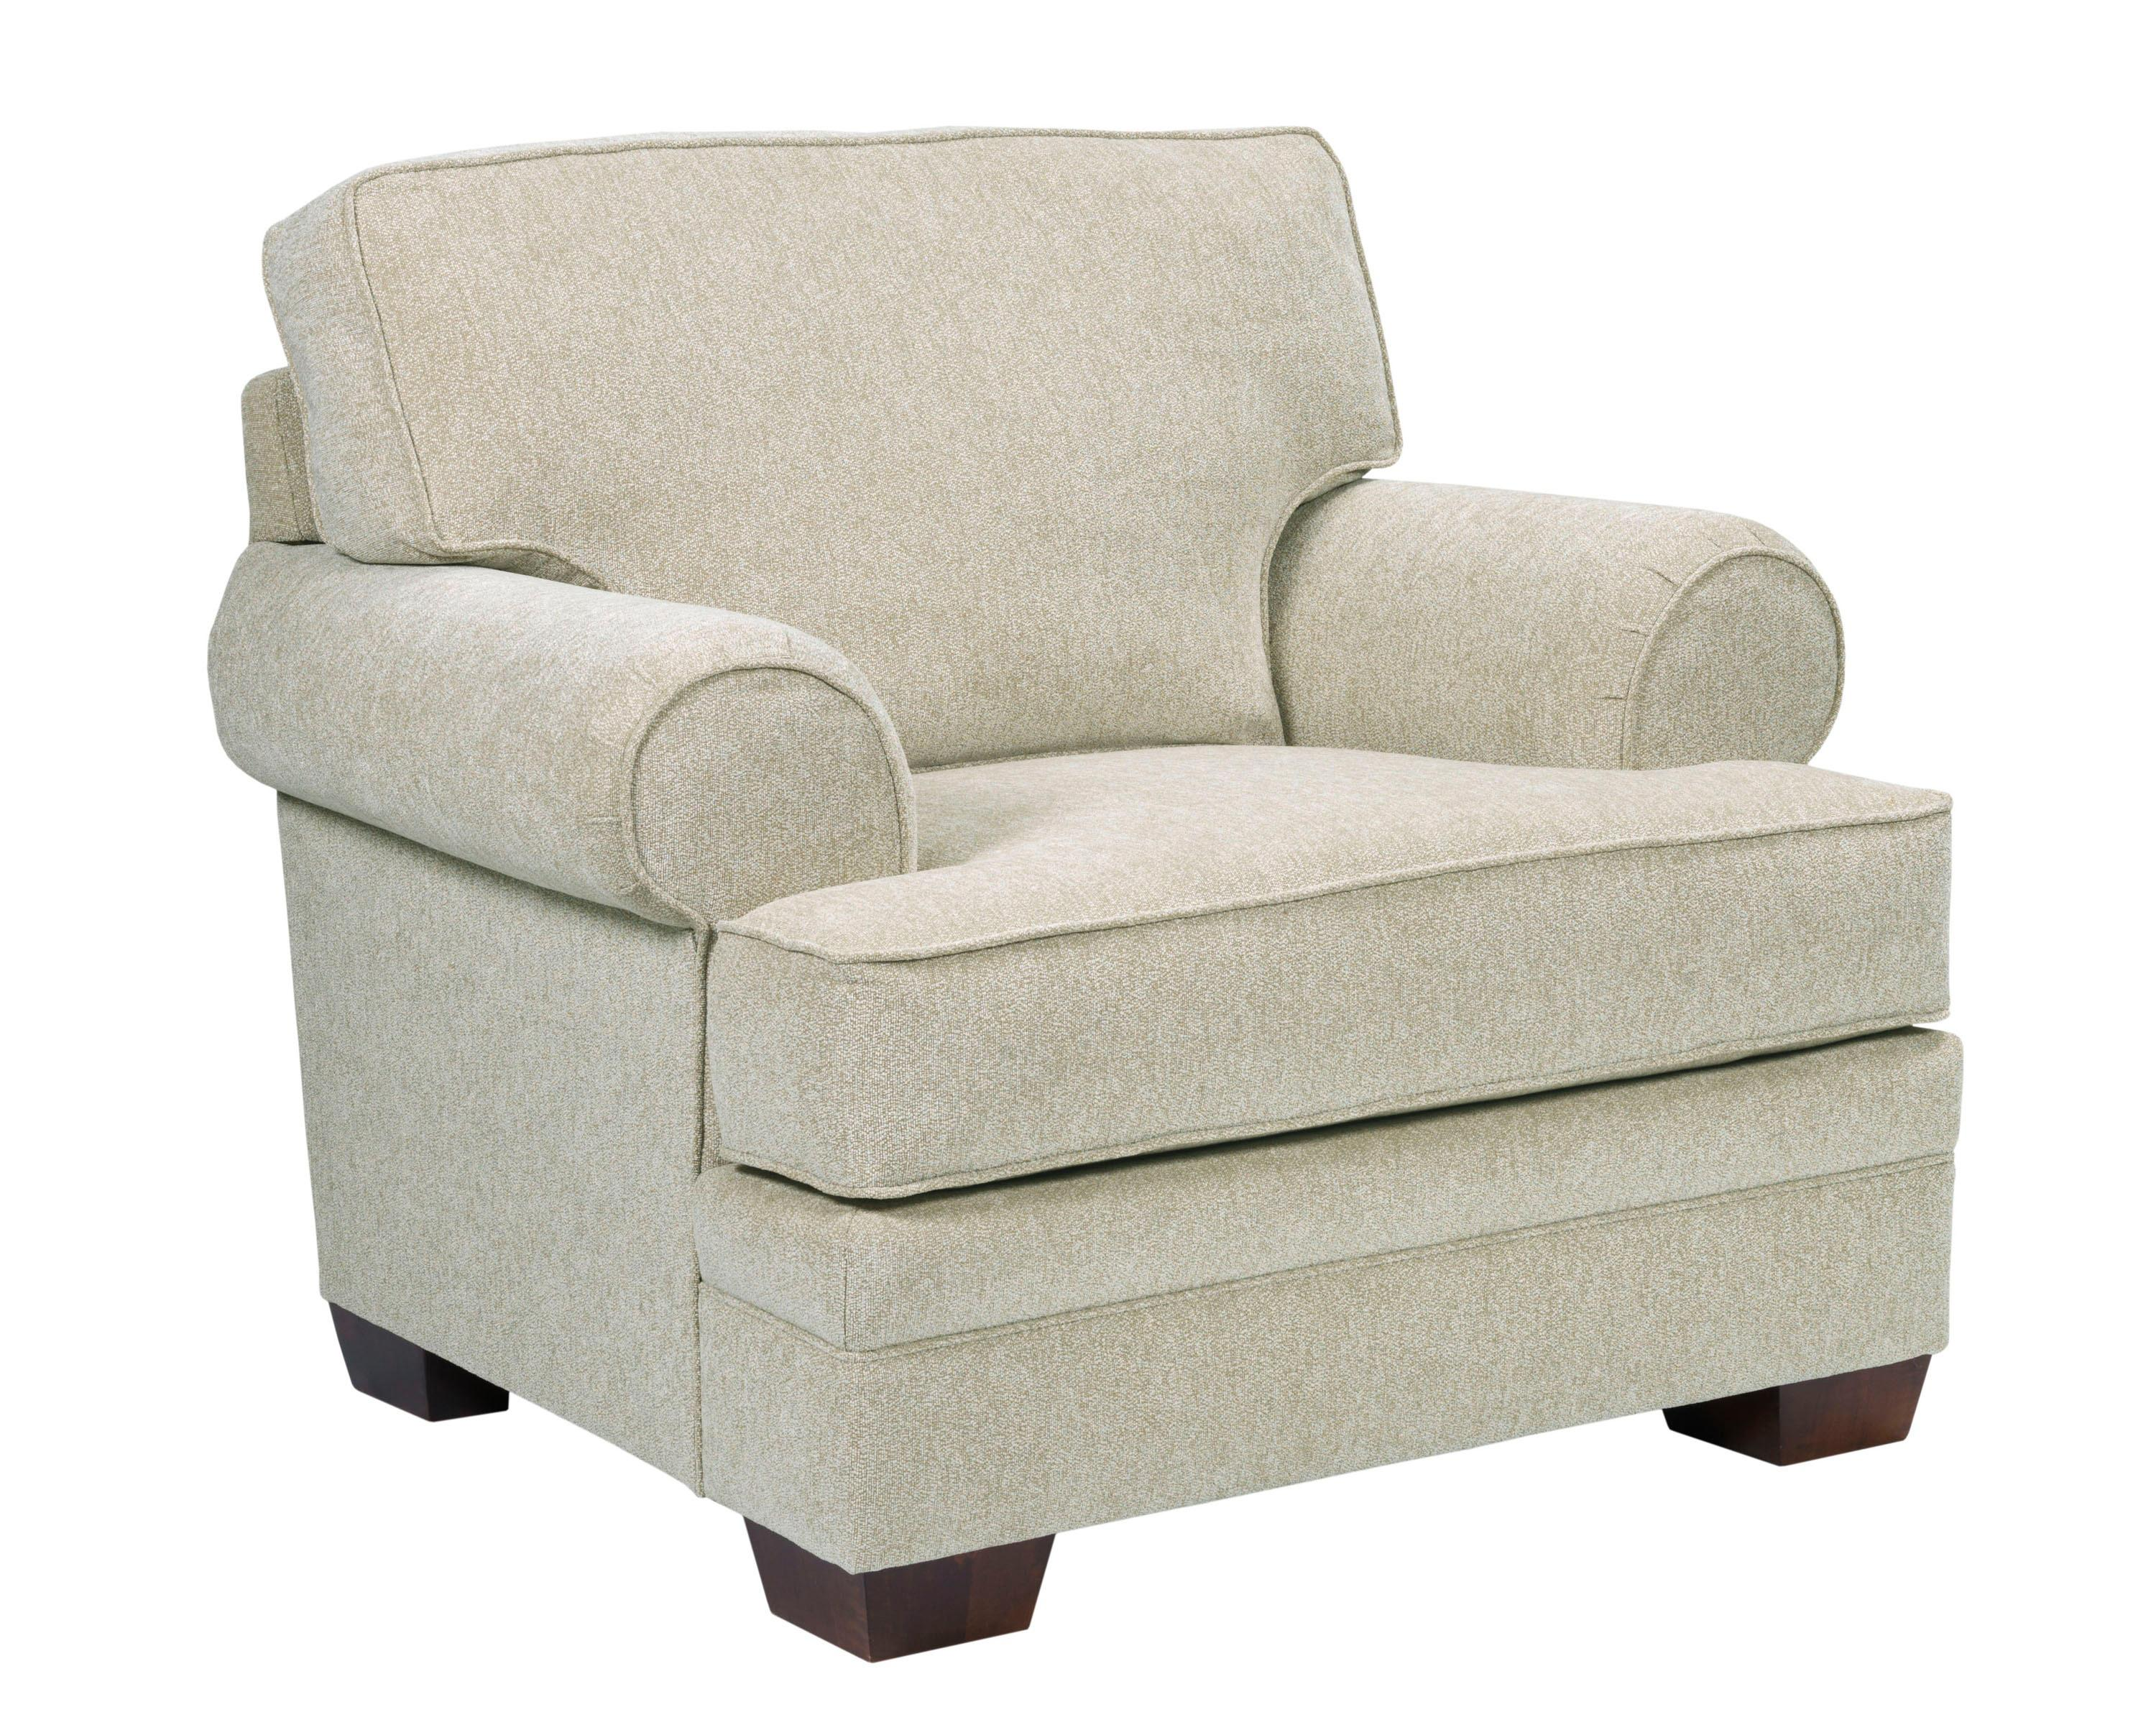 Broyhill Furniture Landon Transitional Upholstered Chair - Item Number: 6608-0